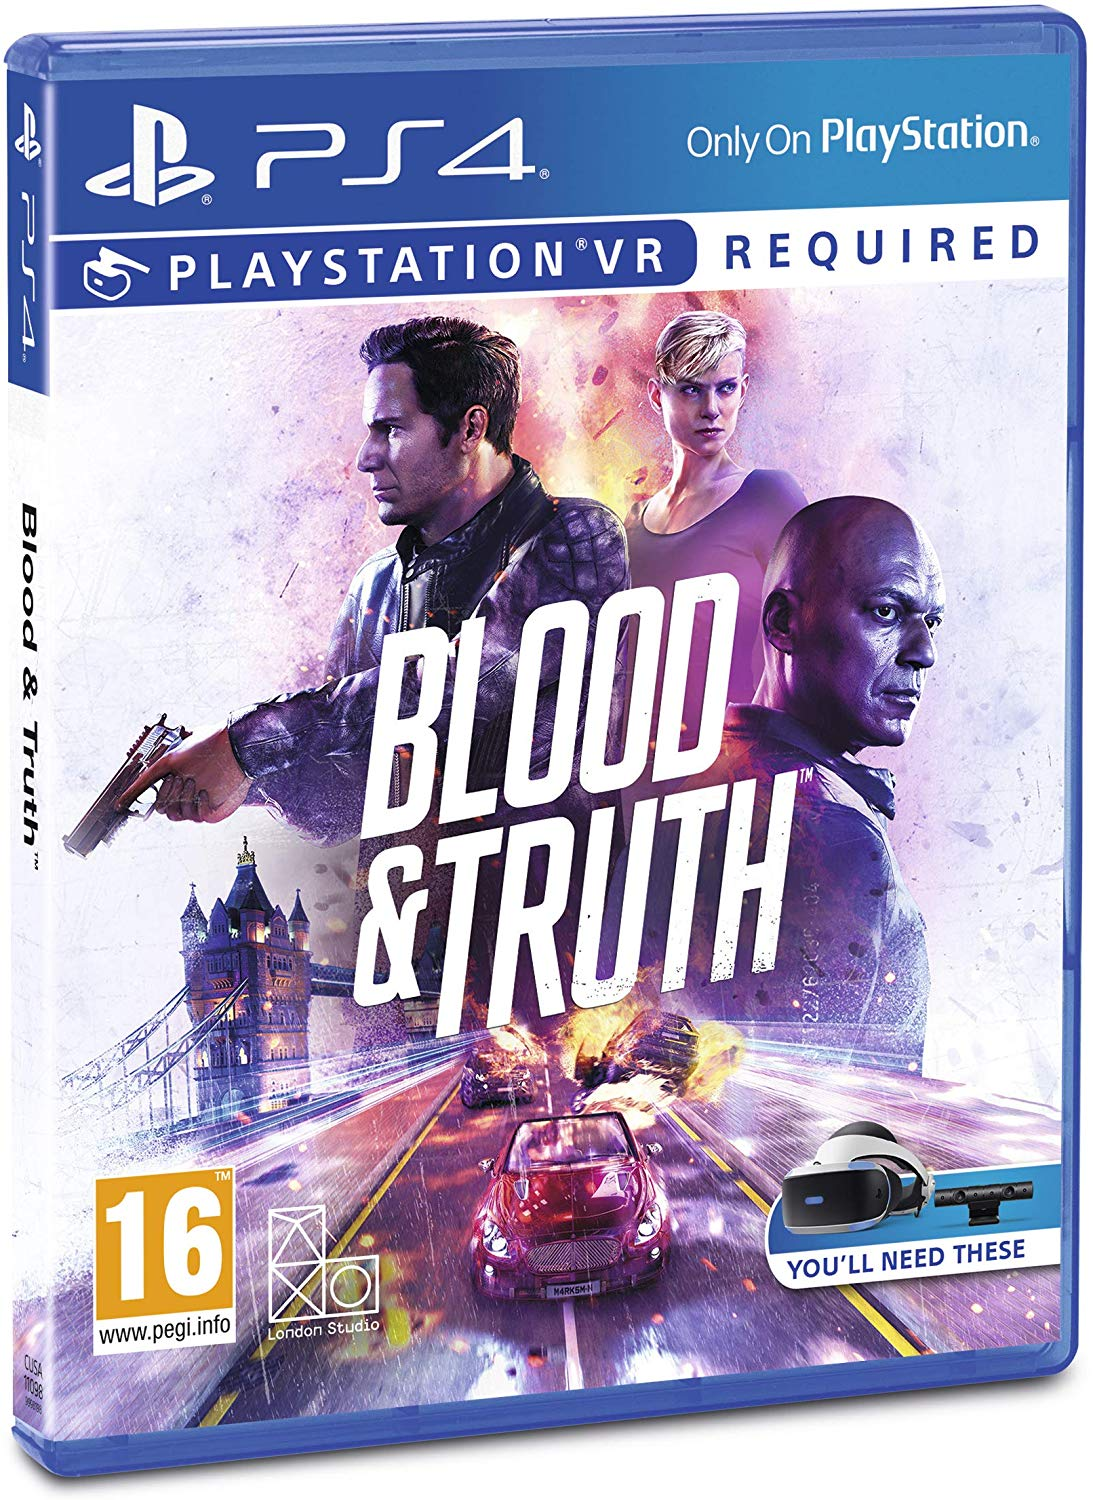 Blood & Truth PS VR PS4, PS4, DVDMEGASTORE, DVDMEGASTORE